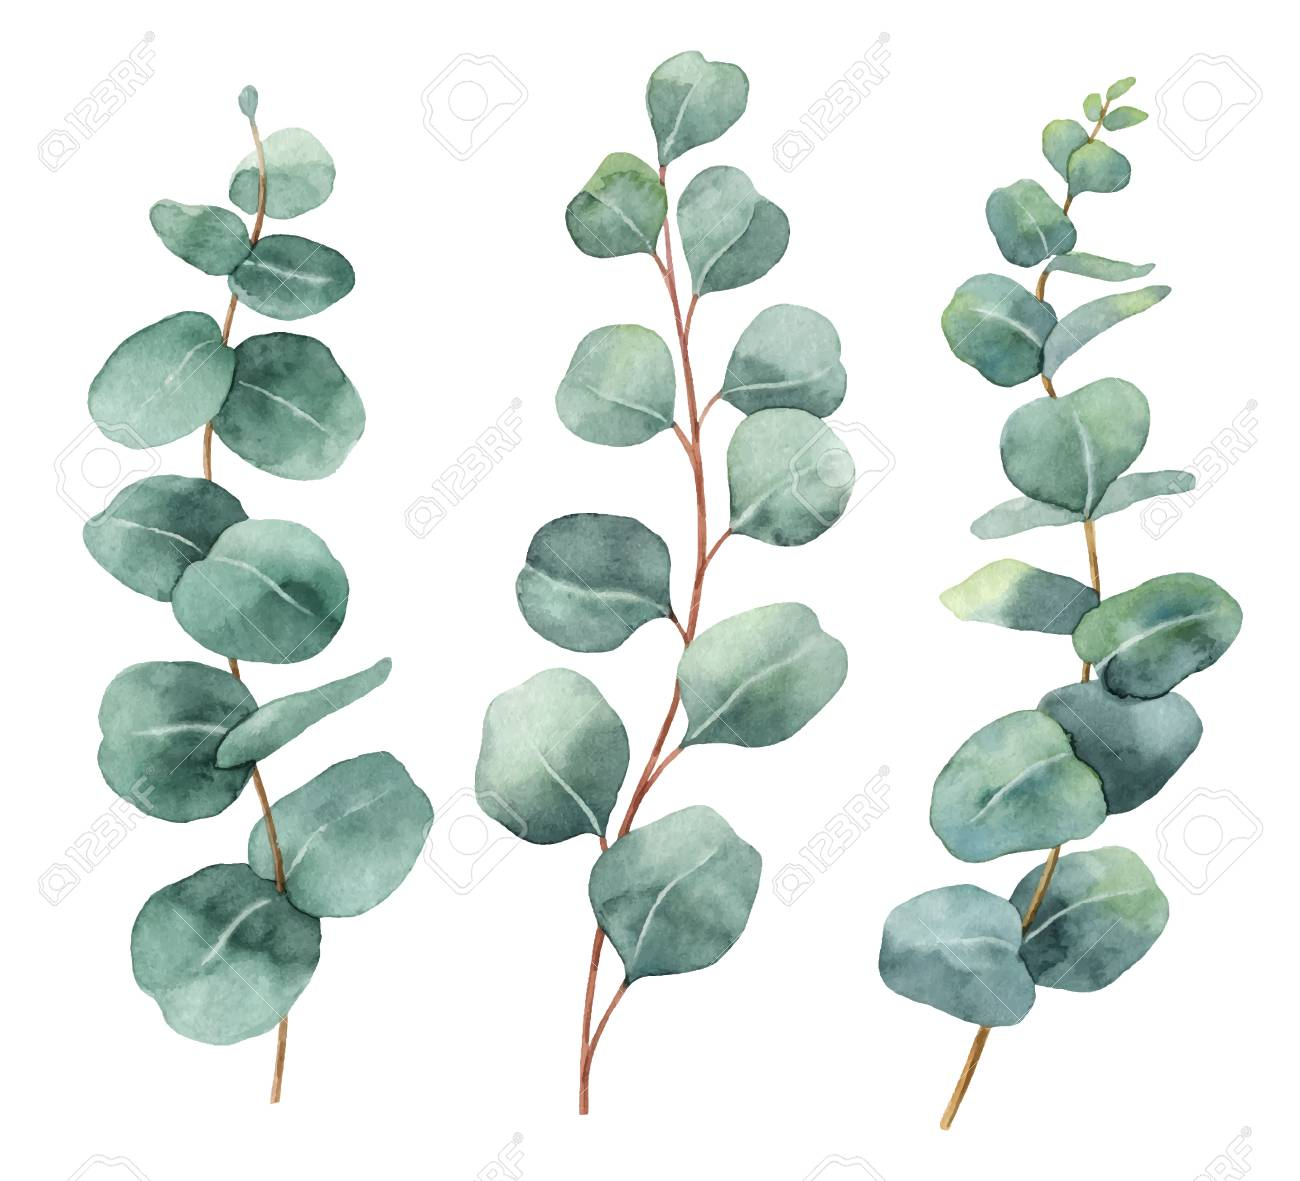 Watercolor hand painted vector set with eucalyptus leaves and branches. Floral illustration isolated on white background. - 92237717